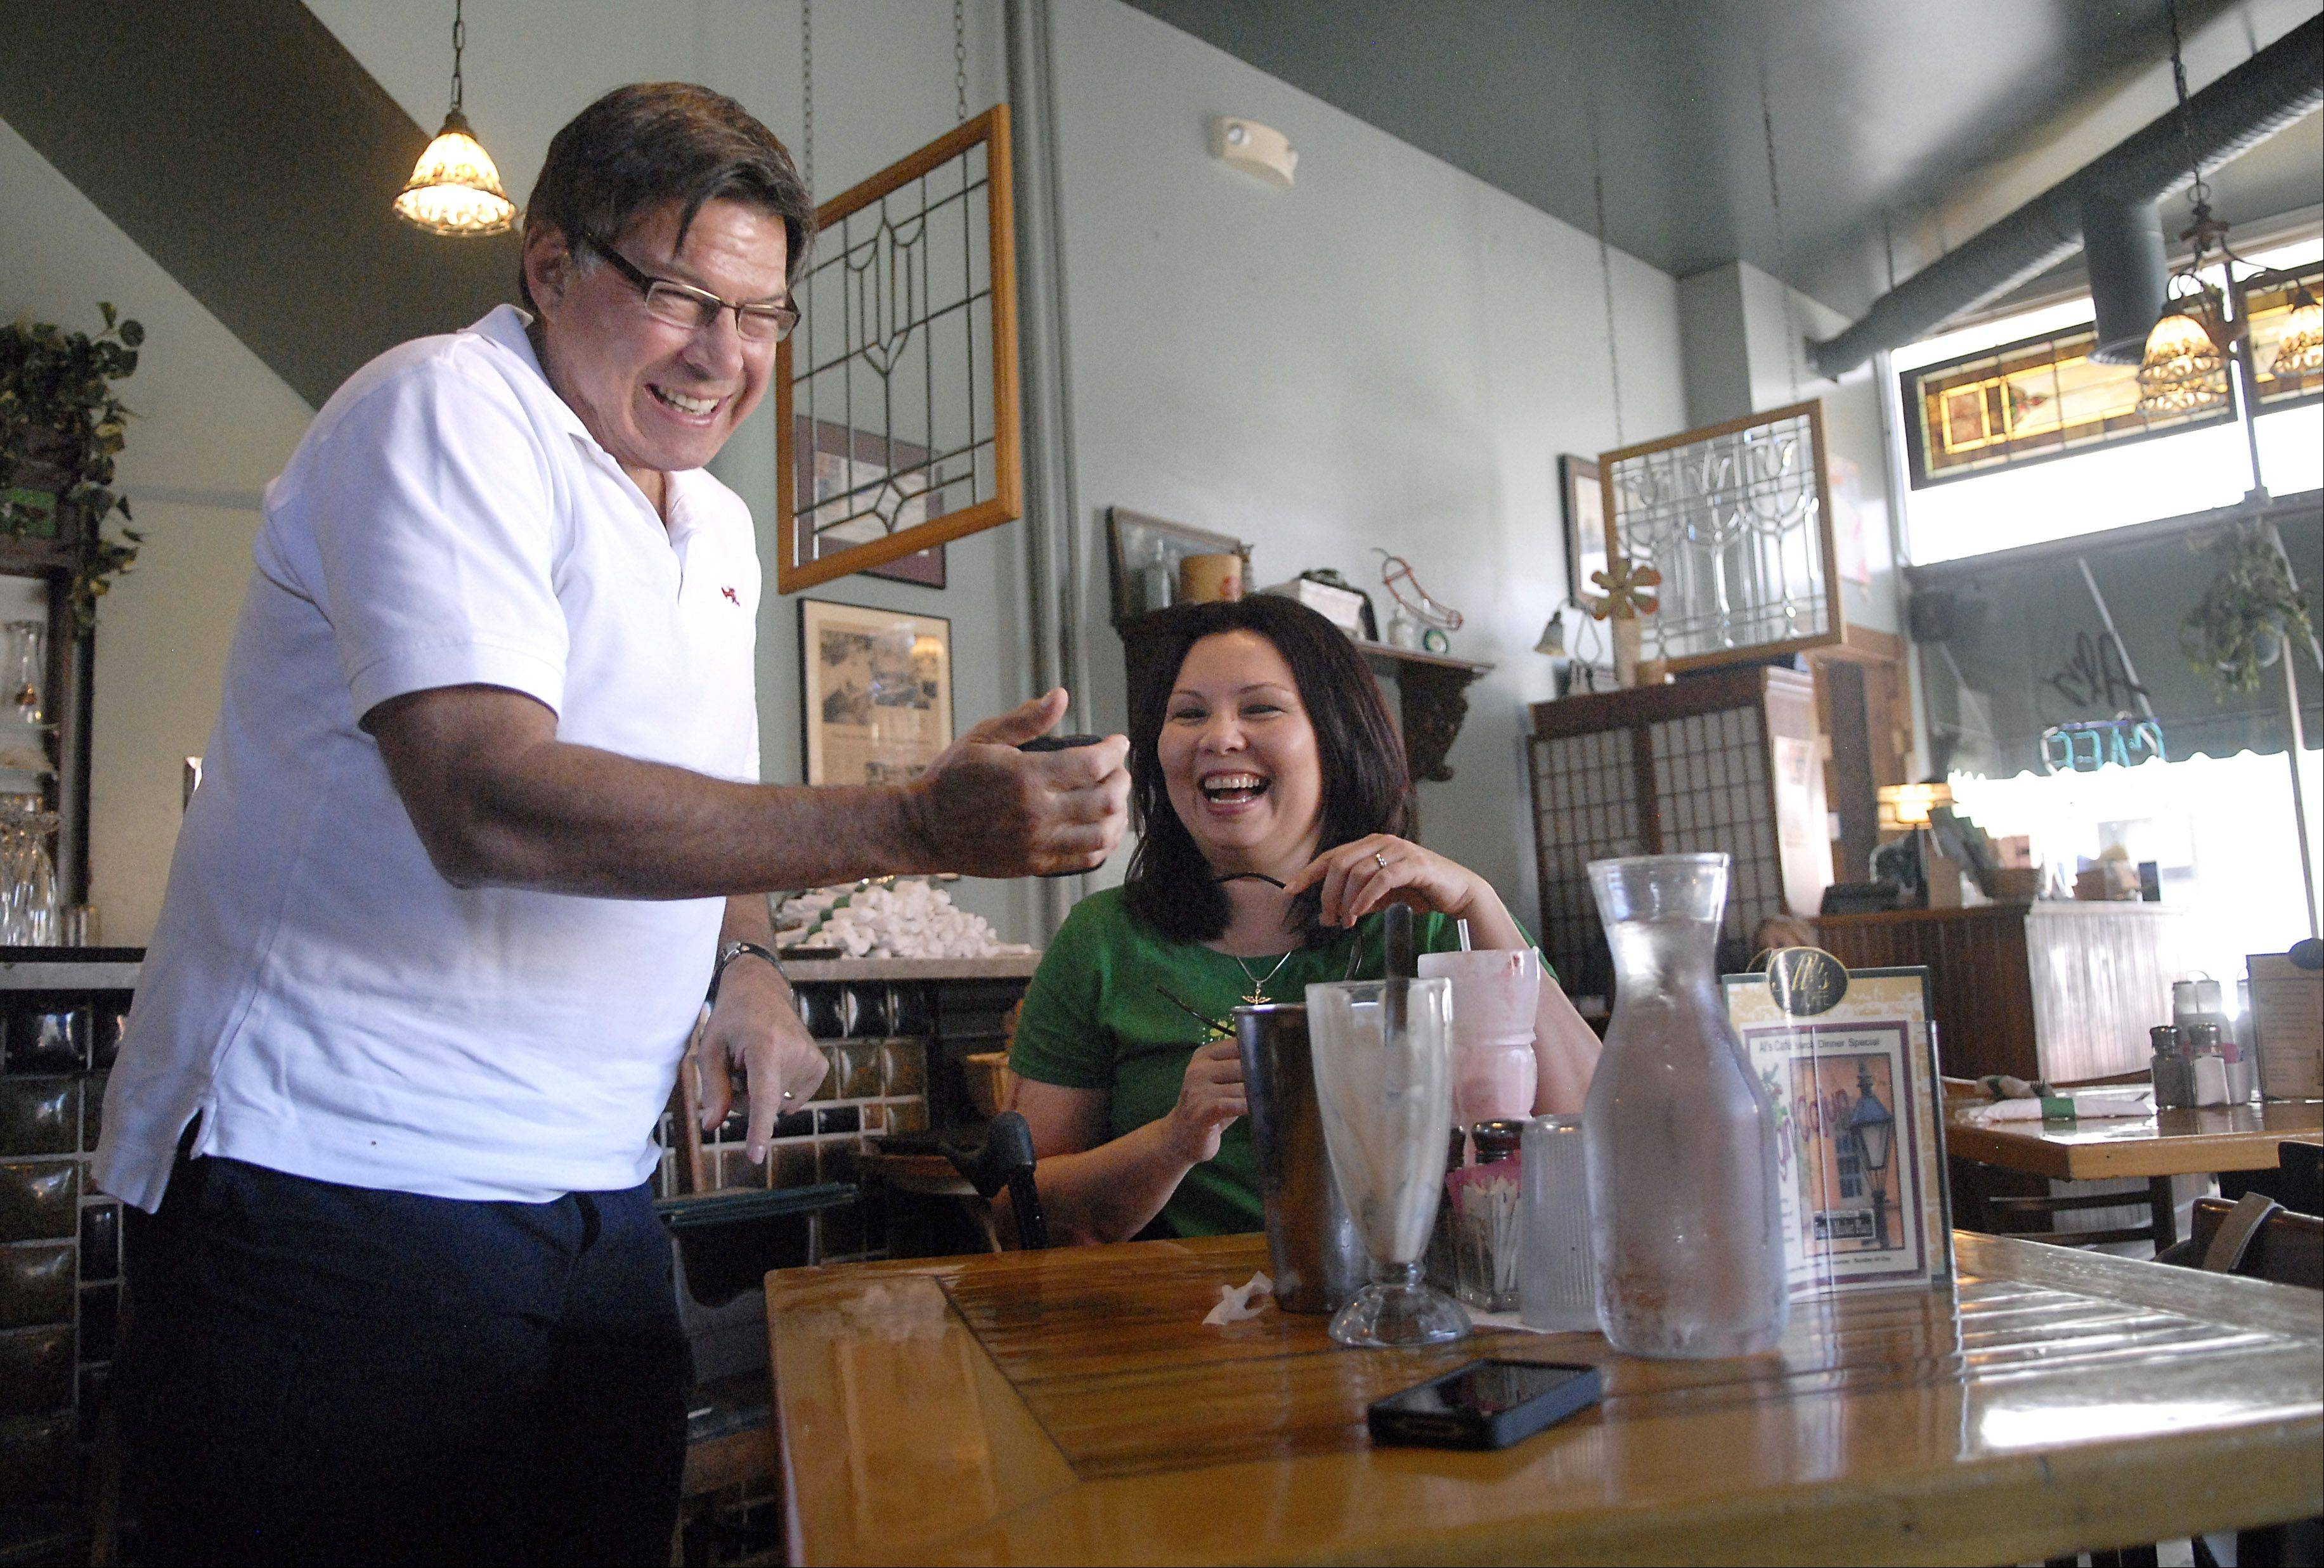 Lance Rodgers of Barrington shares a laugh about a text with Democratic 8th District Congressional candidate Tammy Duckworth Saturday at Al's Cafe in Elgin.